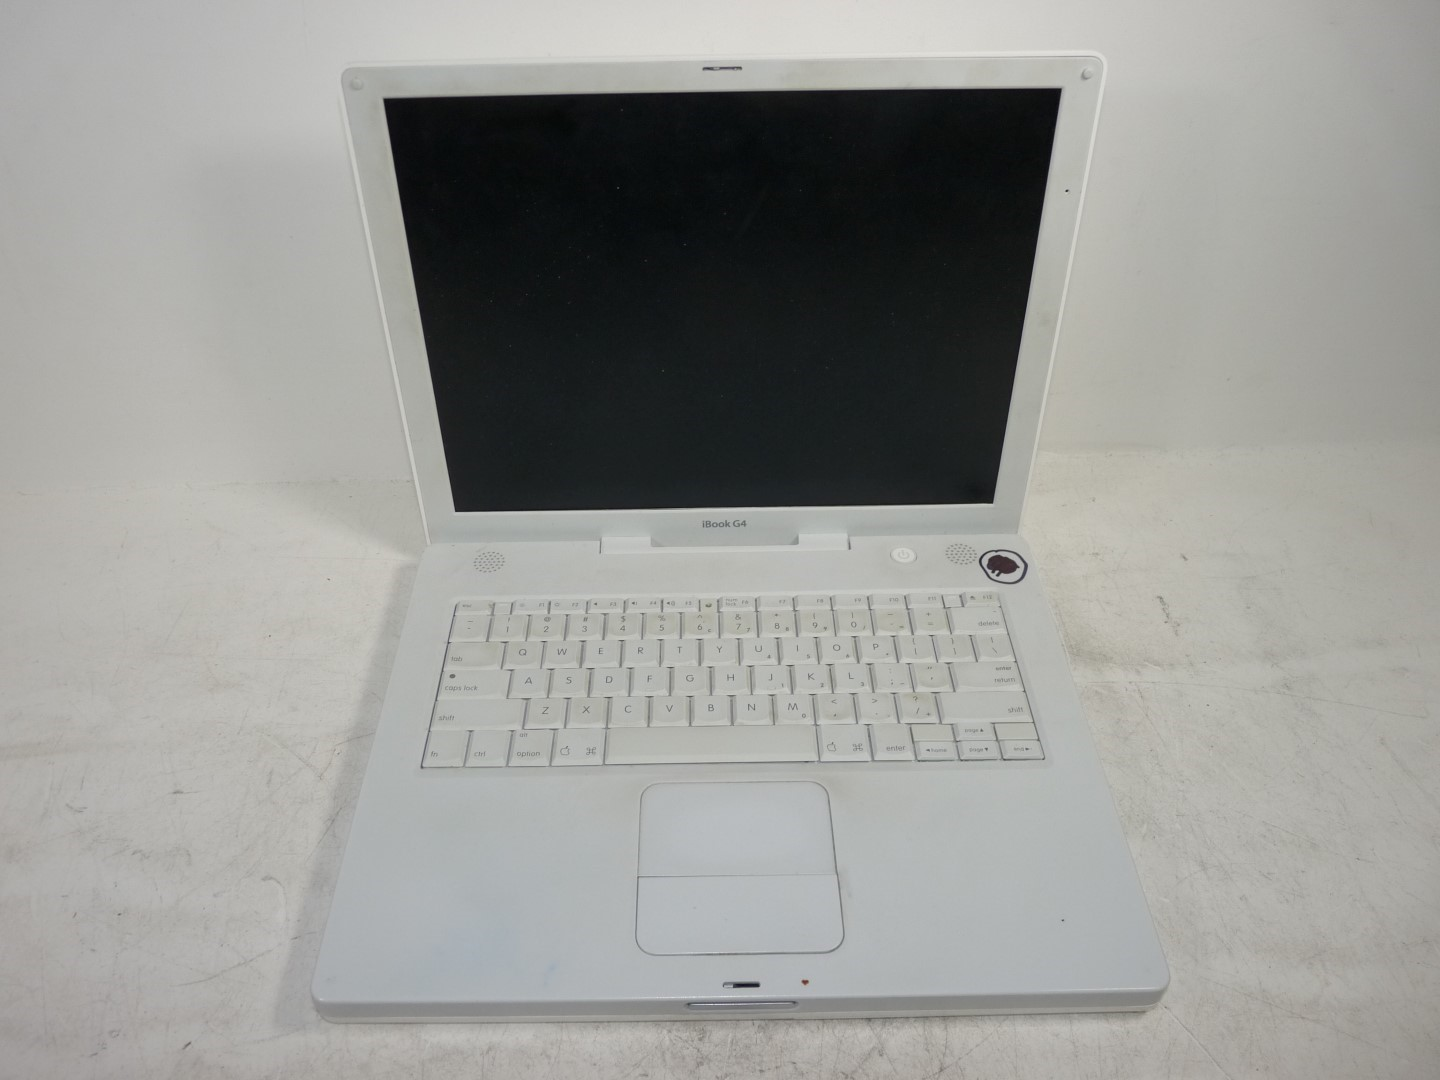 apple a1134 ibook g4 powerpc 512mb 30gb hd wiped hard drive no os post ebay. Black Bedroom Furniture Sets. Home Design Ideas